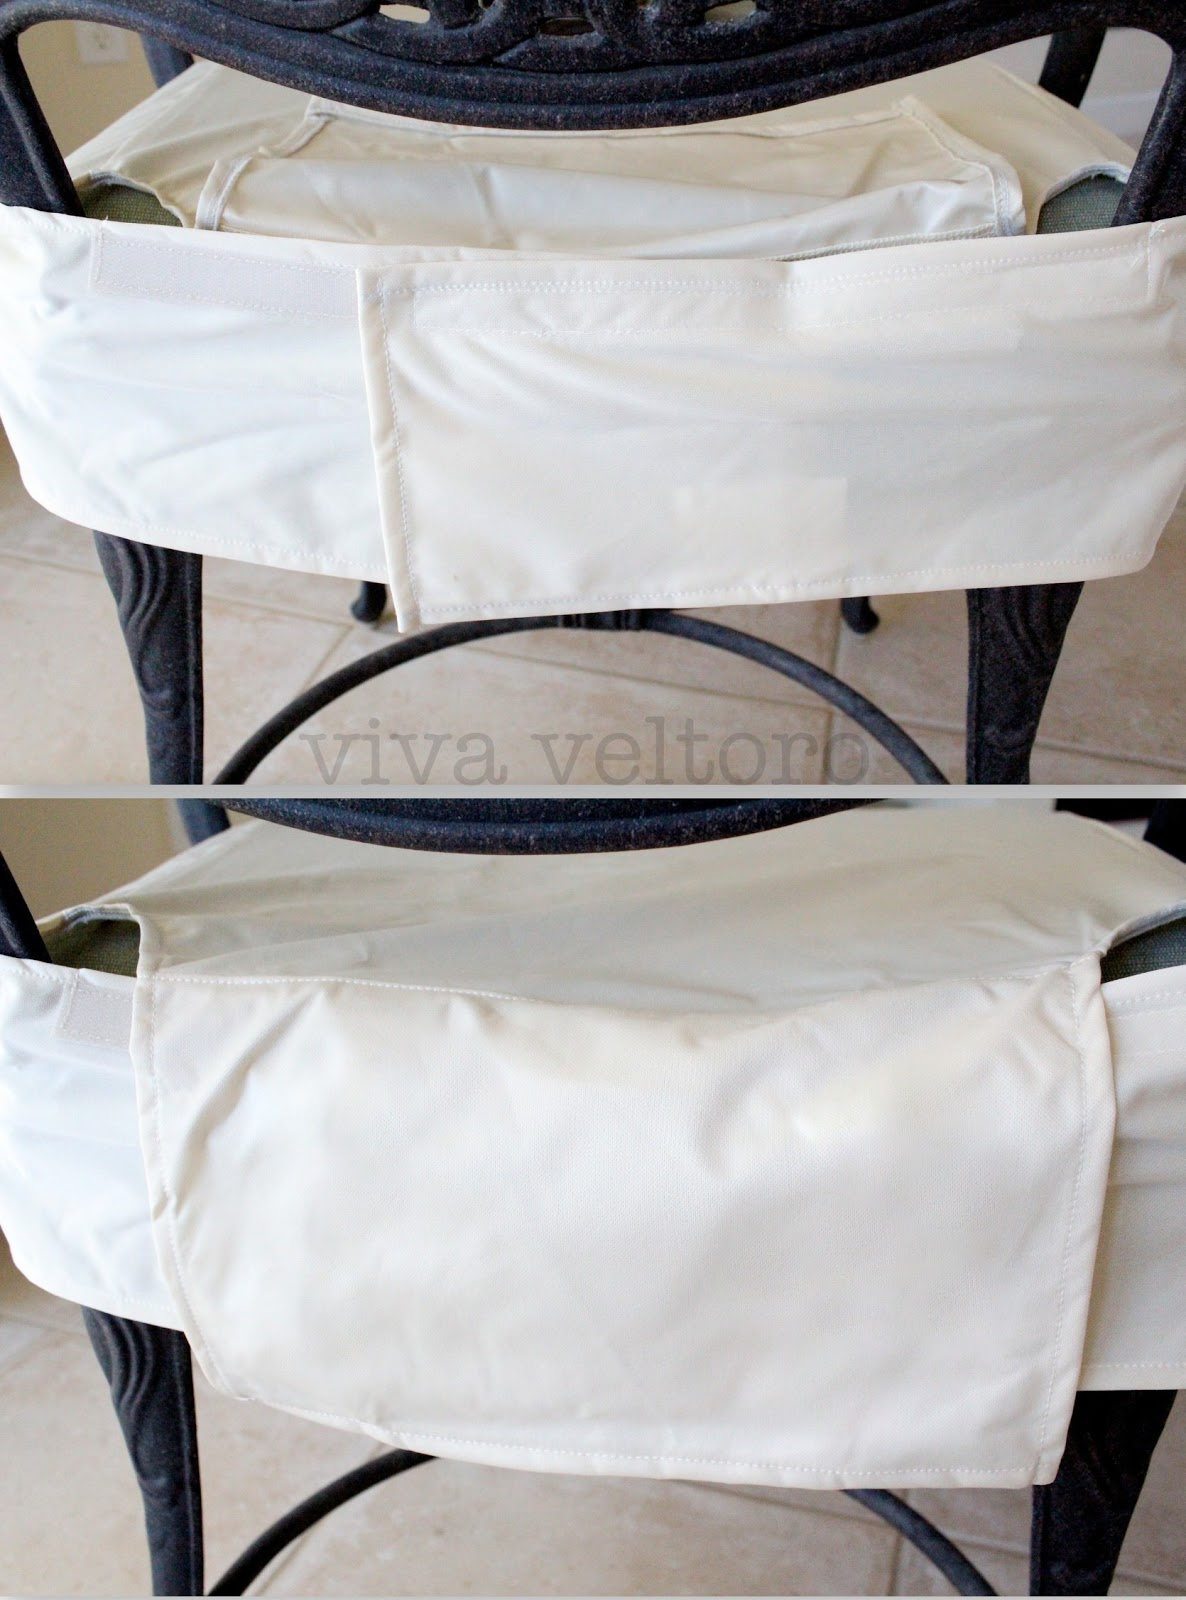 Chair Cover Elegance Childrens Tables And Chairs Vive Vita Everyday Covers Review Viva Veltoro